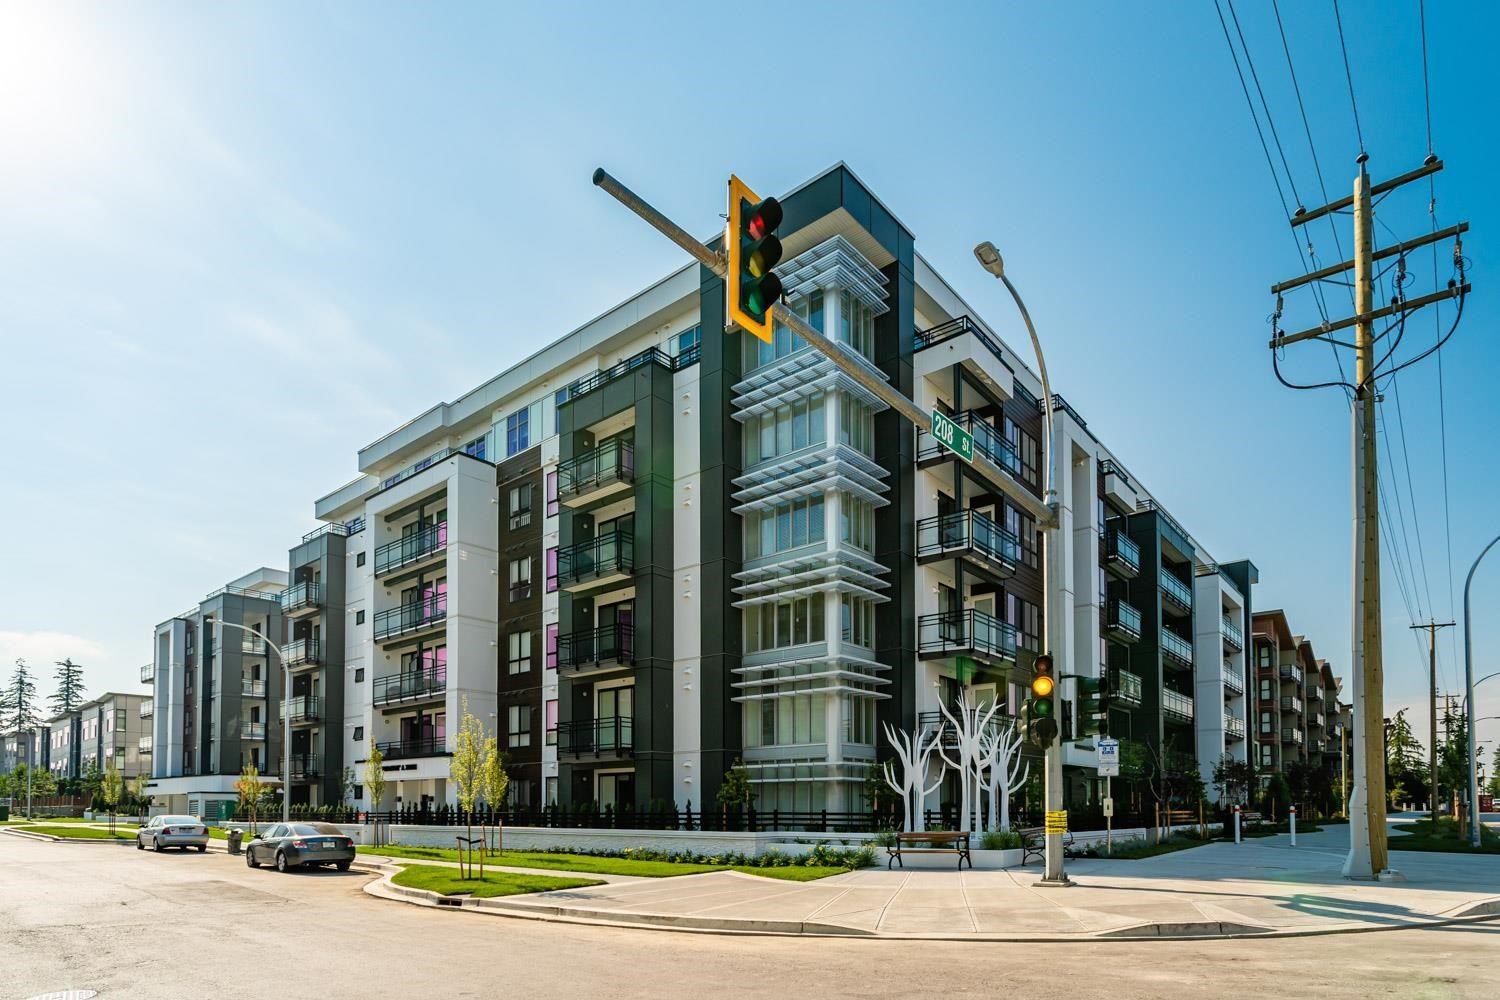 Main Photo: A604 20838 78B AVENUE in Langley: Willoughby Heights Condo for sale : MLS®# R2601286